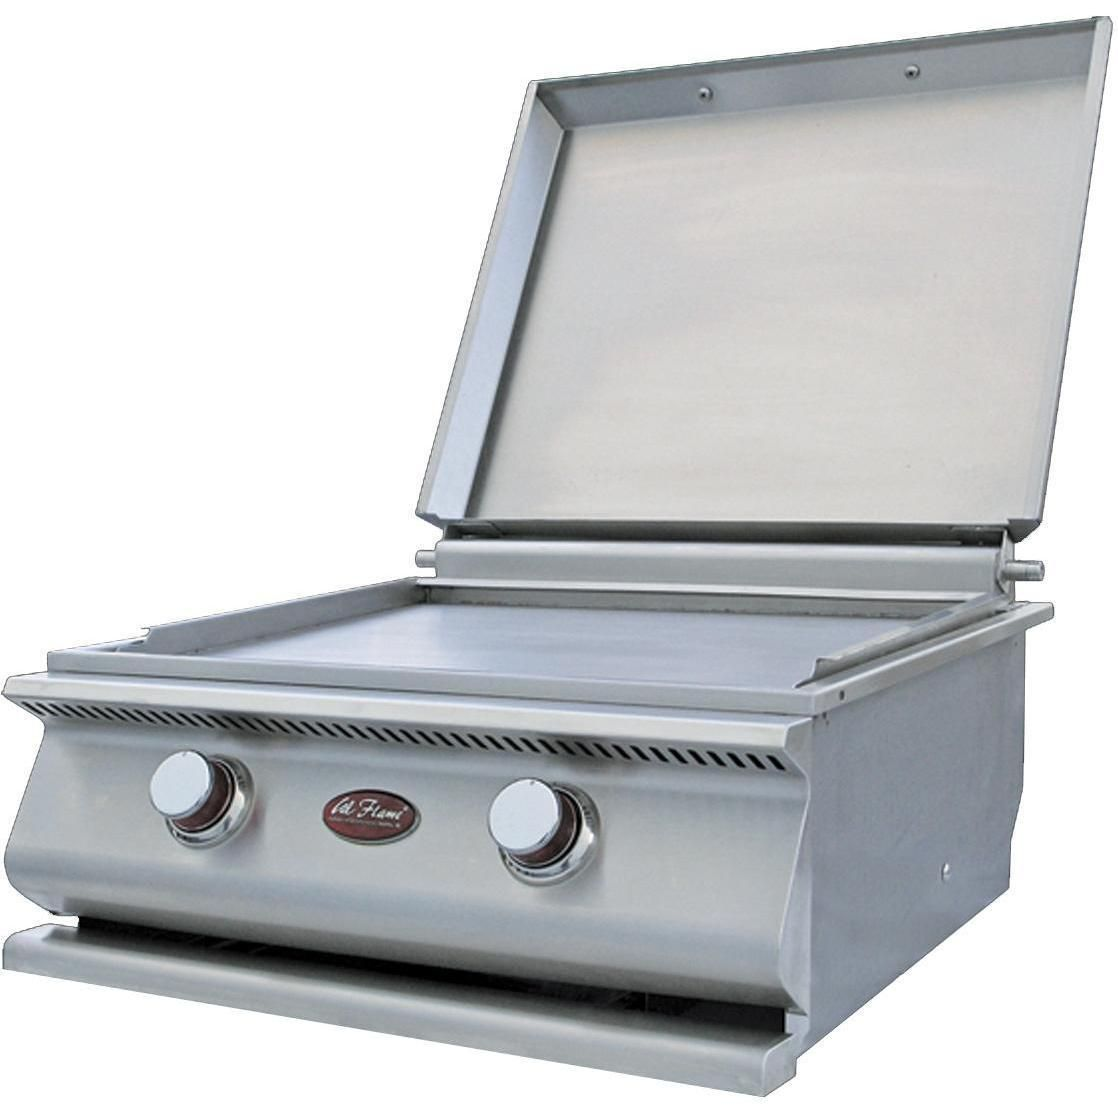 Cal Flame 24 Inch Built In Stainless Steel Natural Gas Hibachi Griddle Gas Grill W Removable Stainless Steel Cover Ships As Propane With Conversion Fittings Cal Flame Hibachi Grill Outdoor Kitchen Design